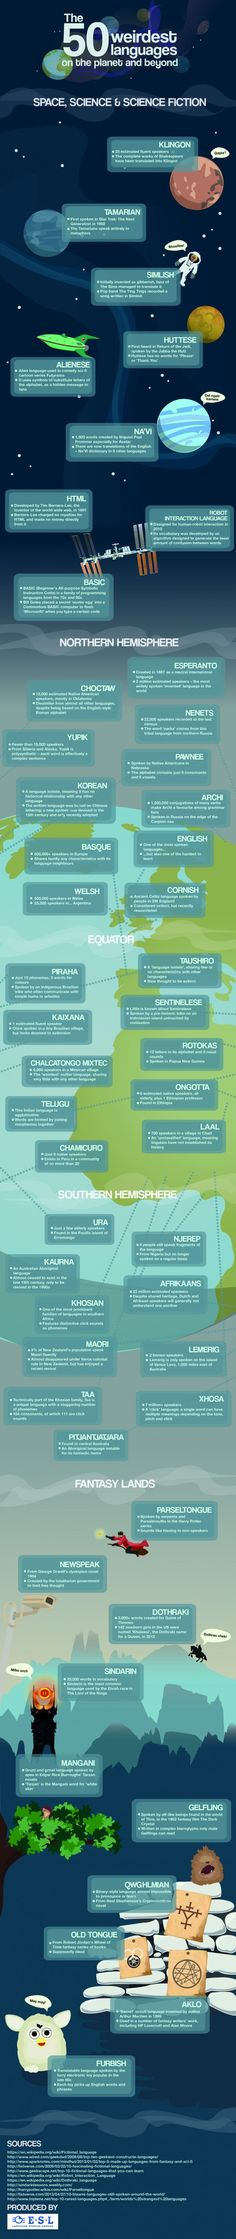 The 50 weirdest #languages on the planet and beyond